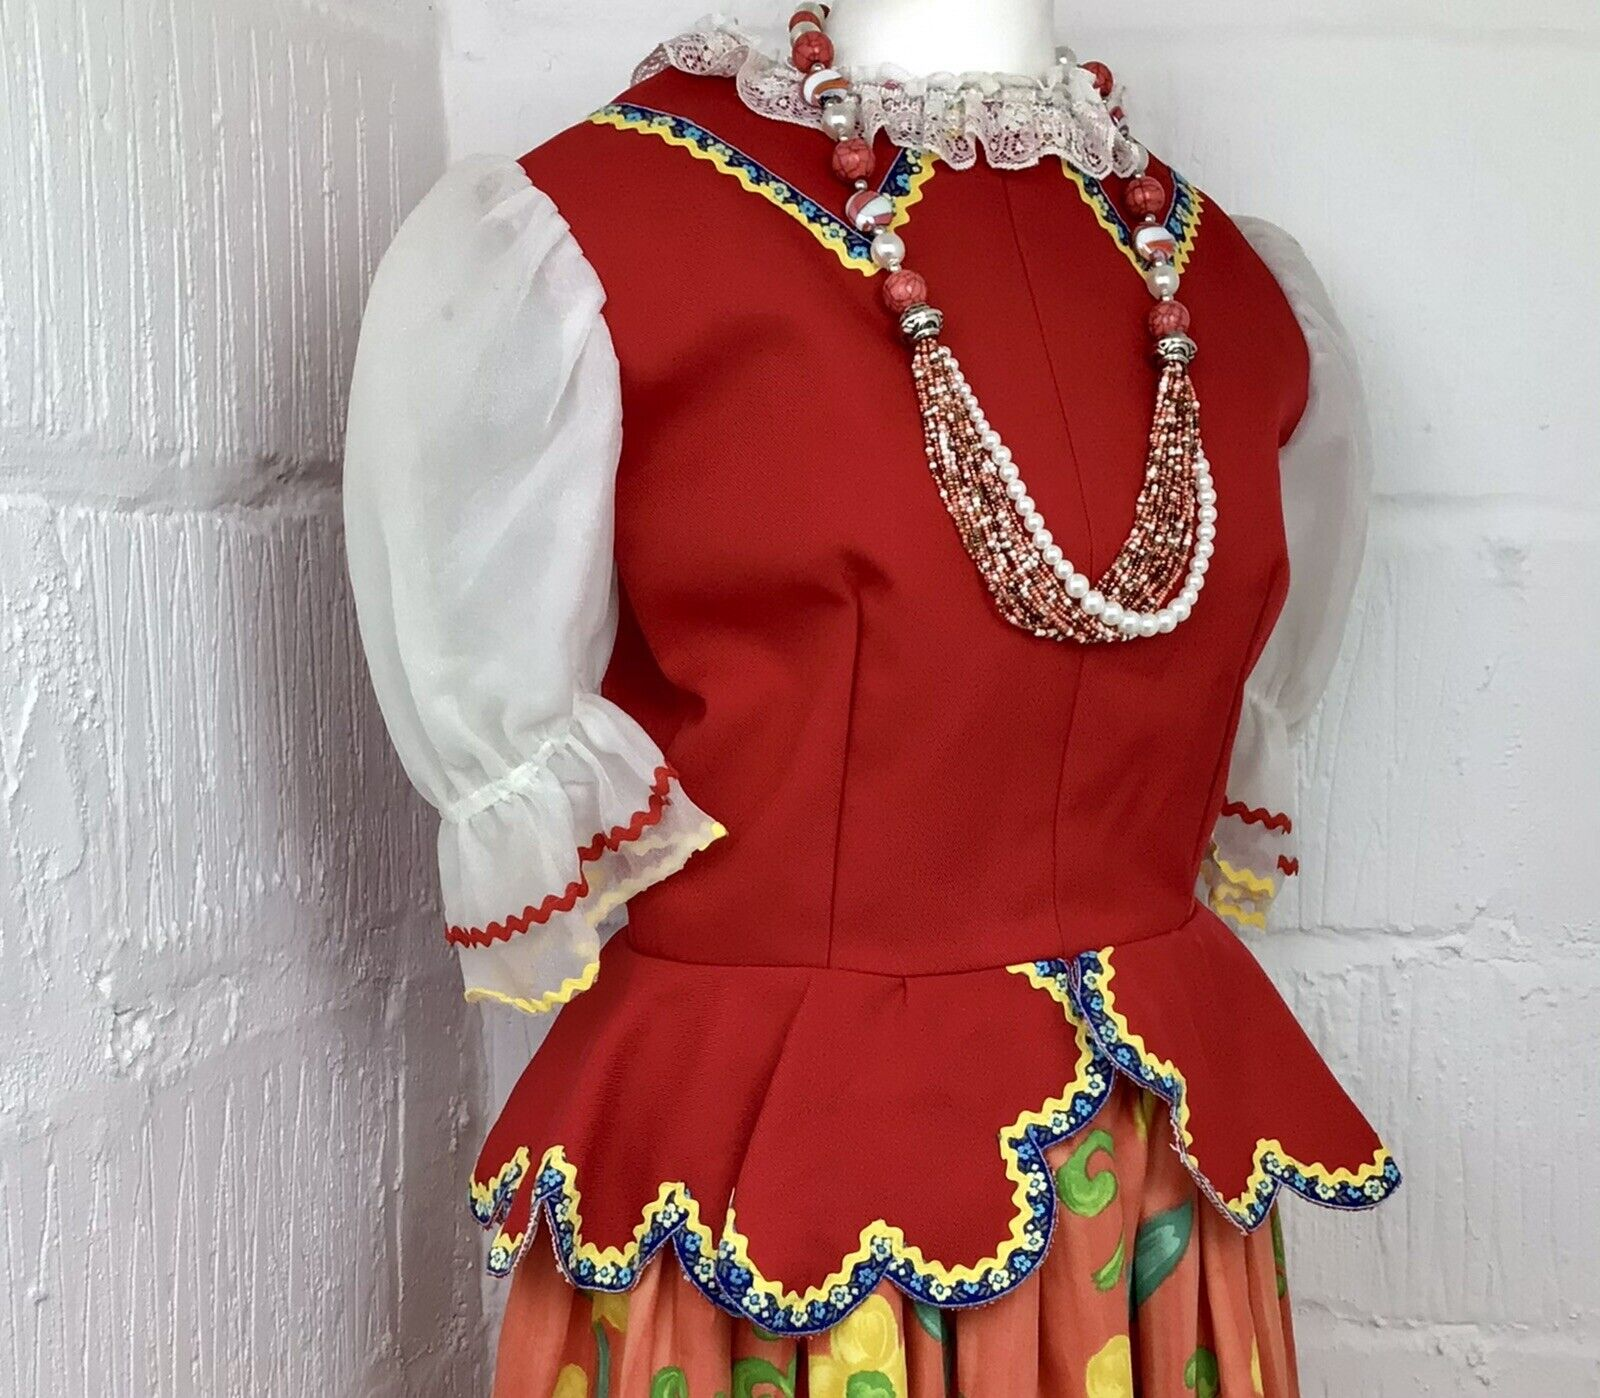 Harlequin Collection Red Vintage Theatre Costume Blouse Top Girls Women's 8/10